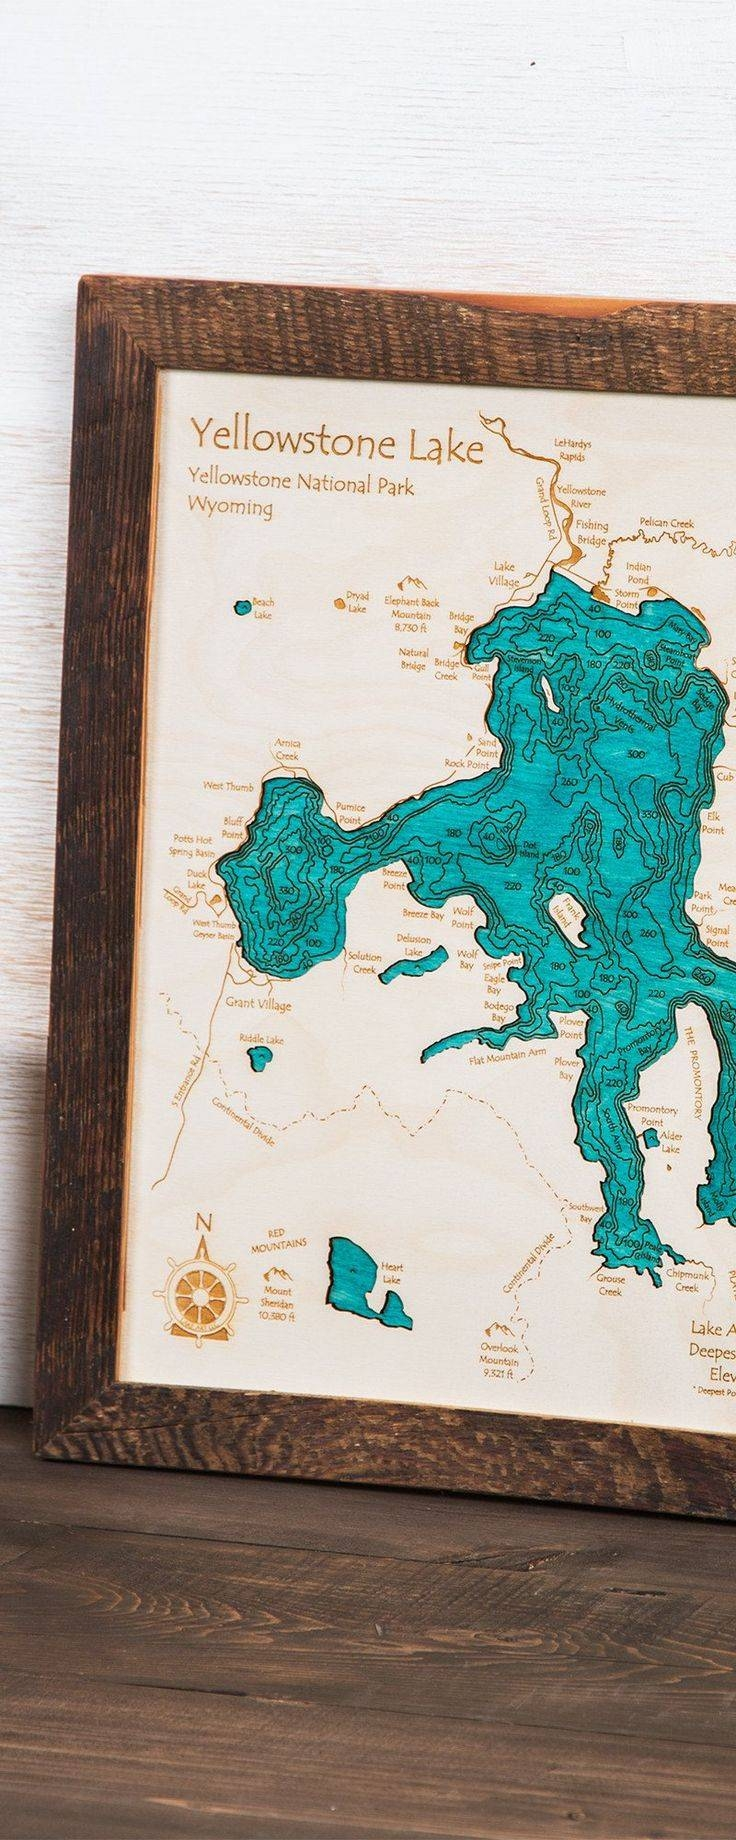 30 Best Map Art Images On Pinterest | Map Art, Baltic Birch And Intended For Recent Lake Map Wall Art (View 17 of 20)